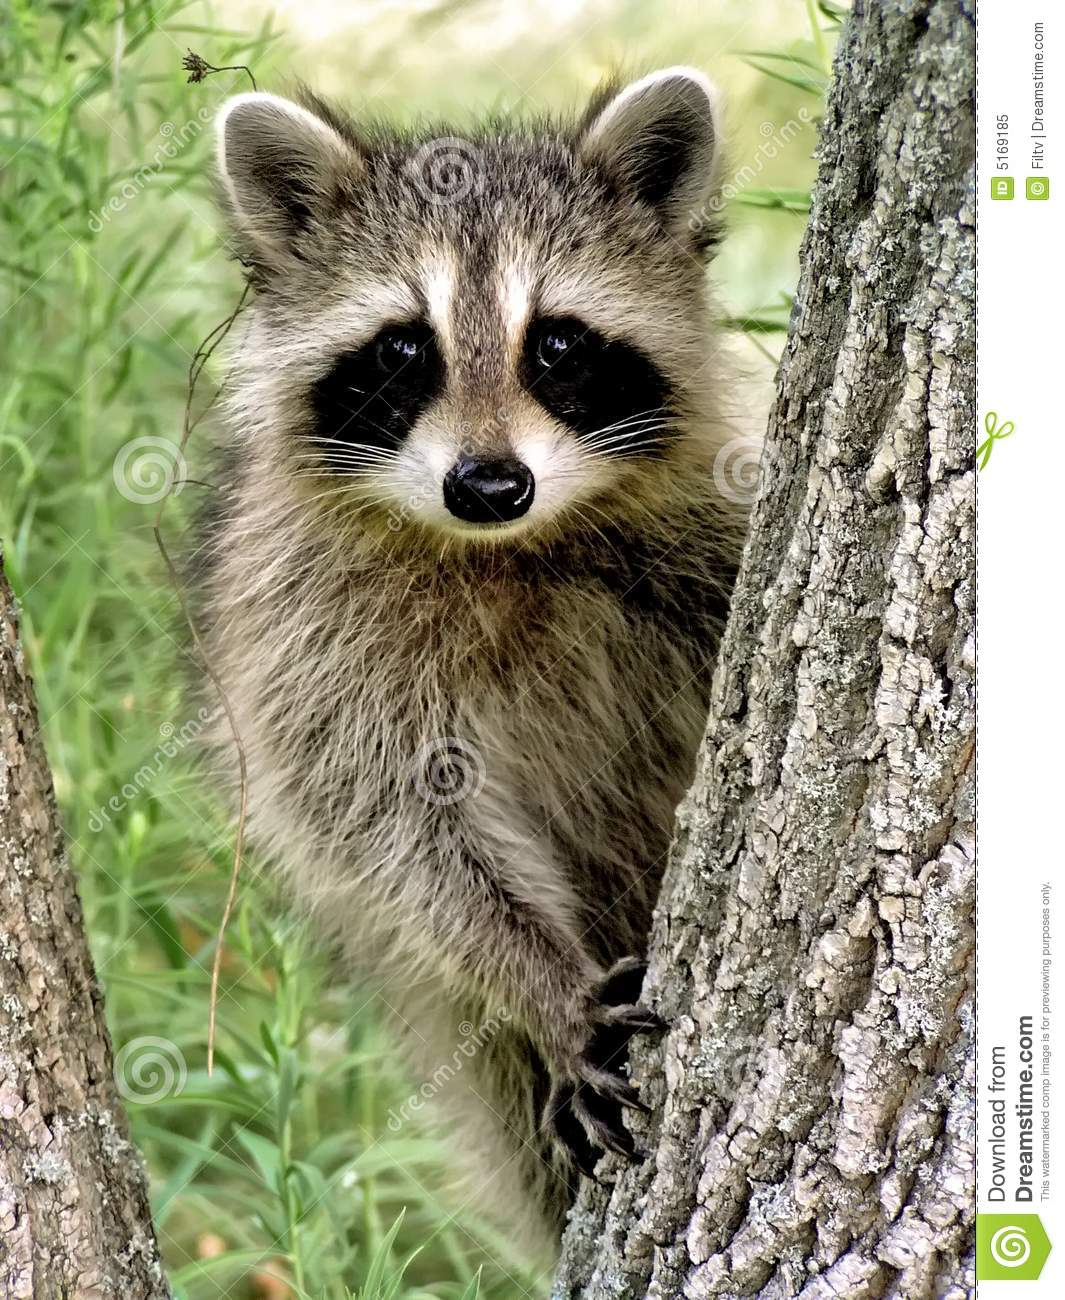 Baby Racoon Royalty Free Stock Photo - Image: 5169185